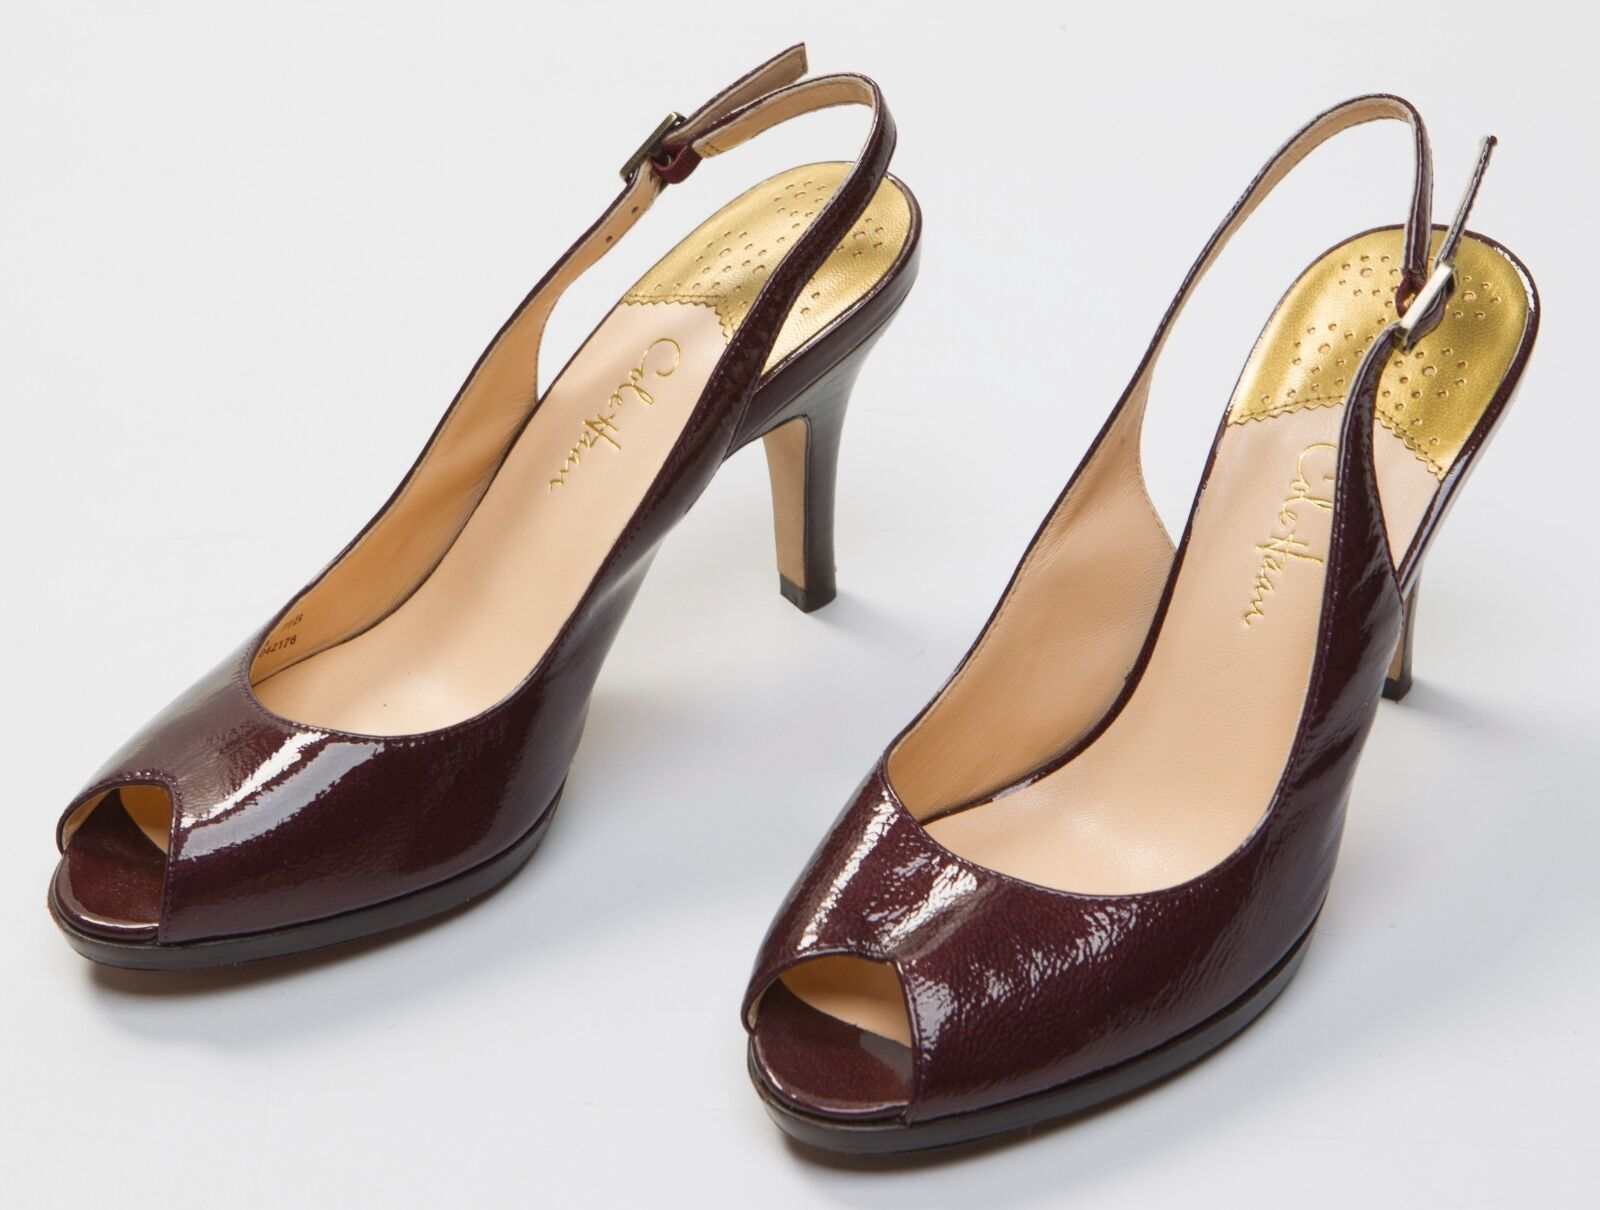 7d1428db7b9 Women s Cole Haan Red Brown Patent Leather Peep Toe Heels shoes Size Sz US  7.5 B